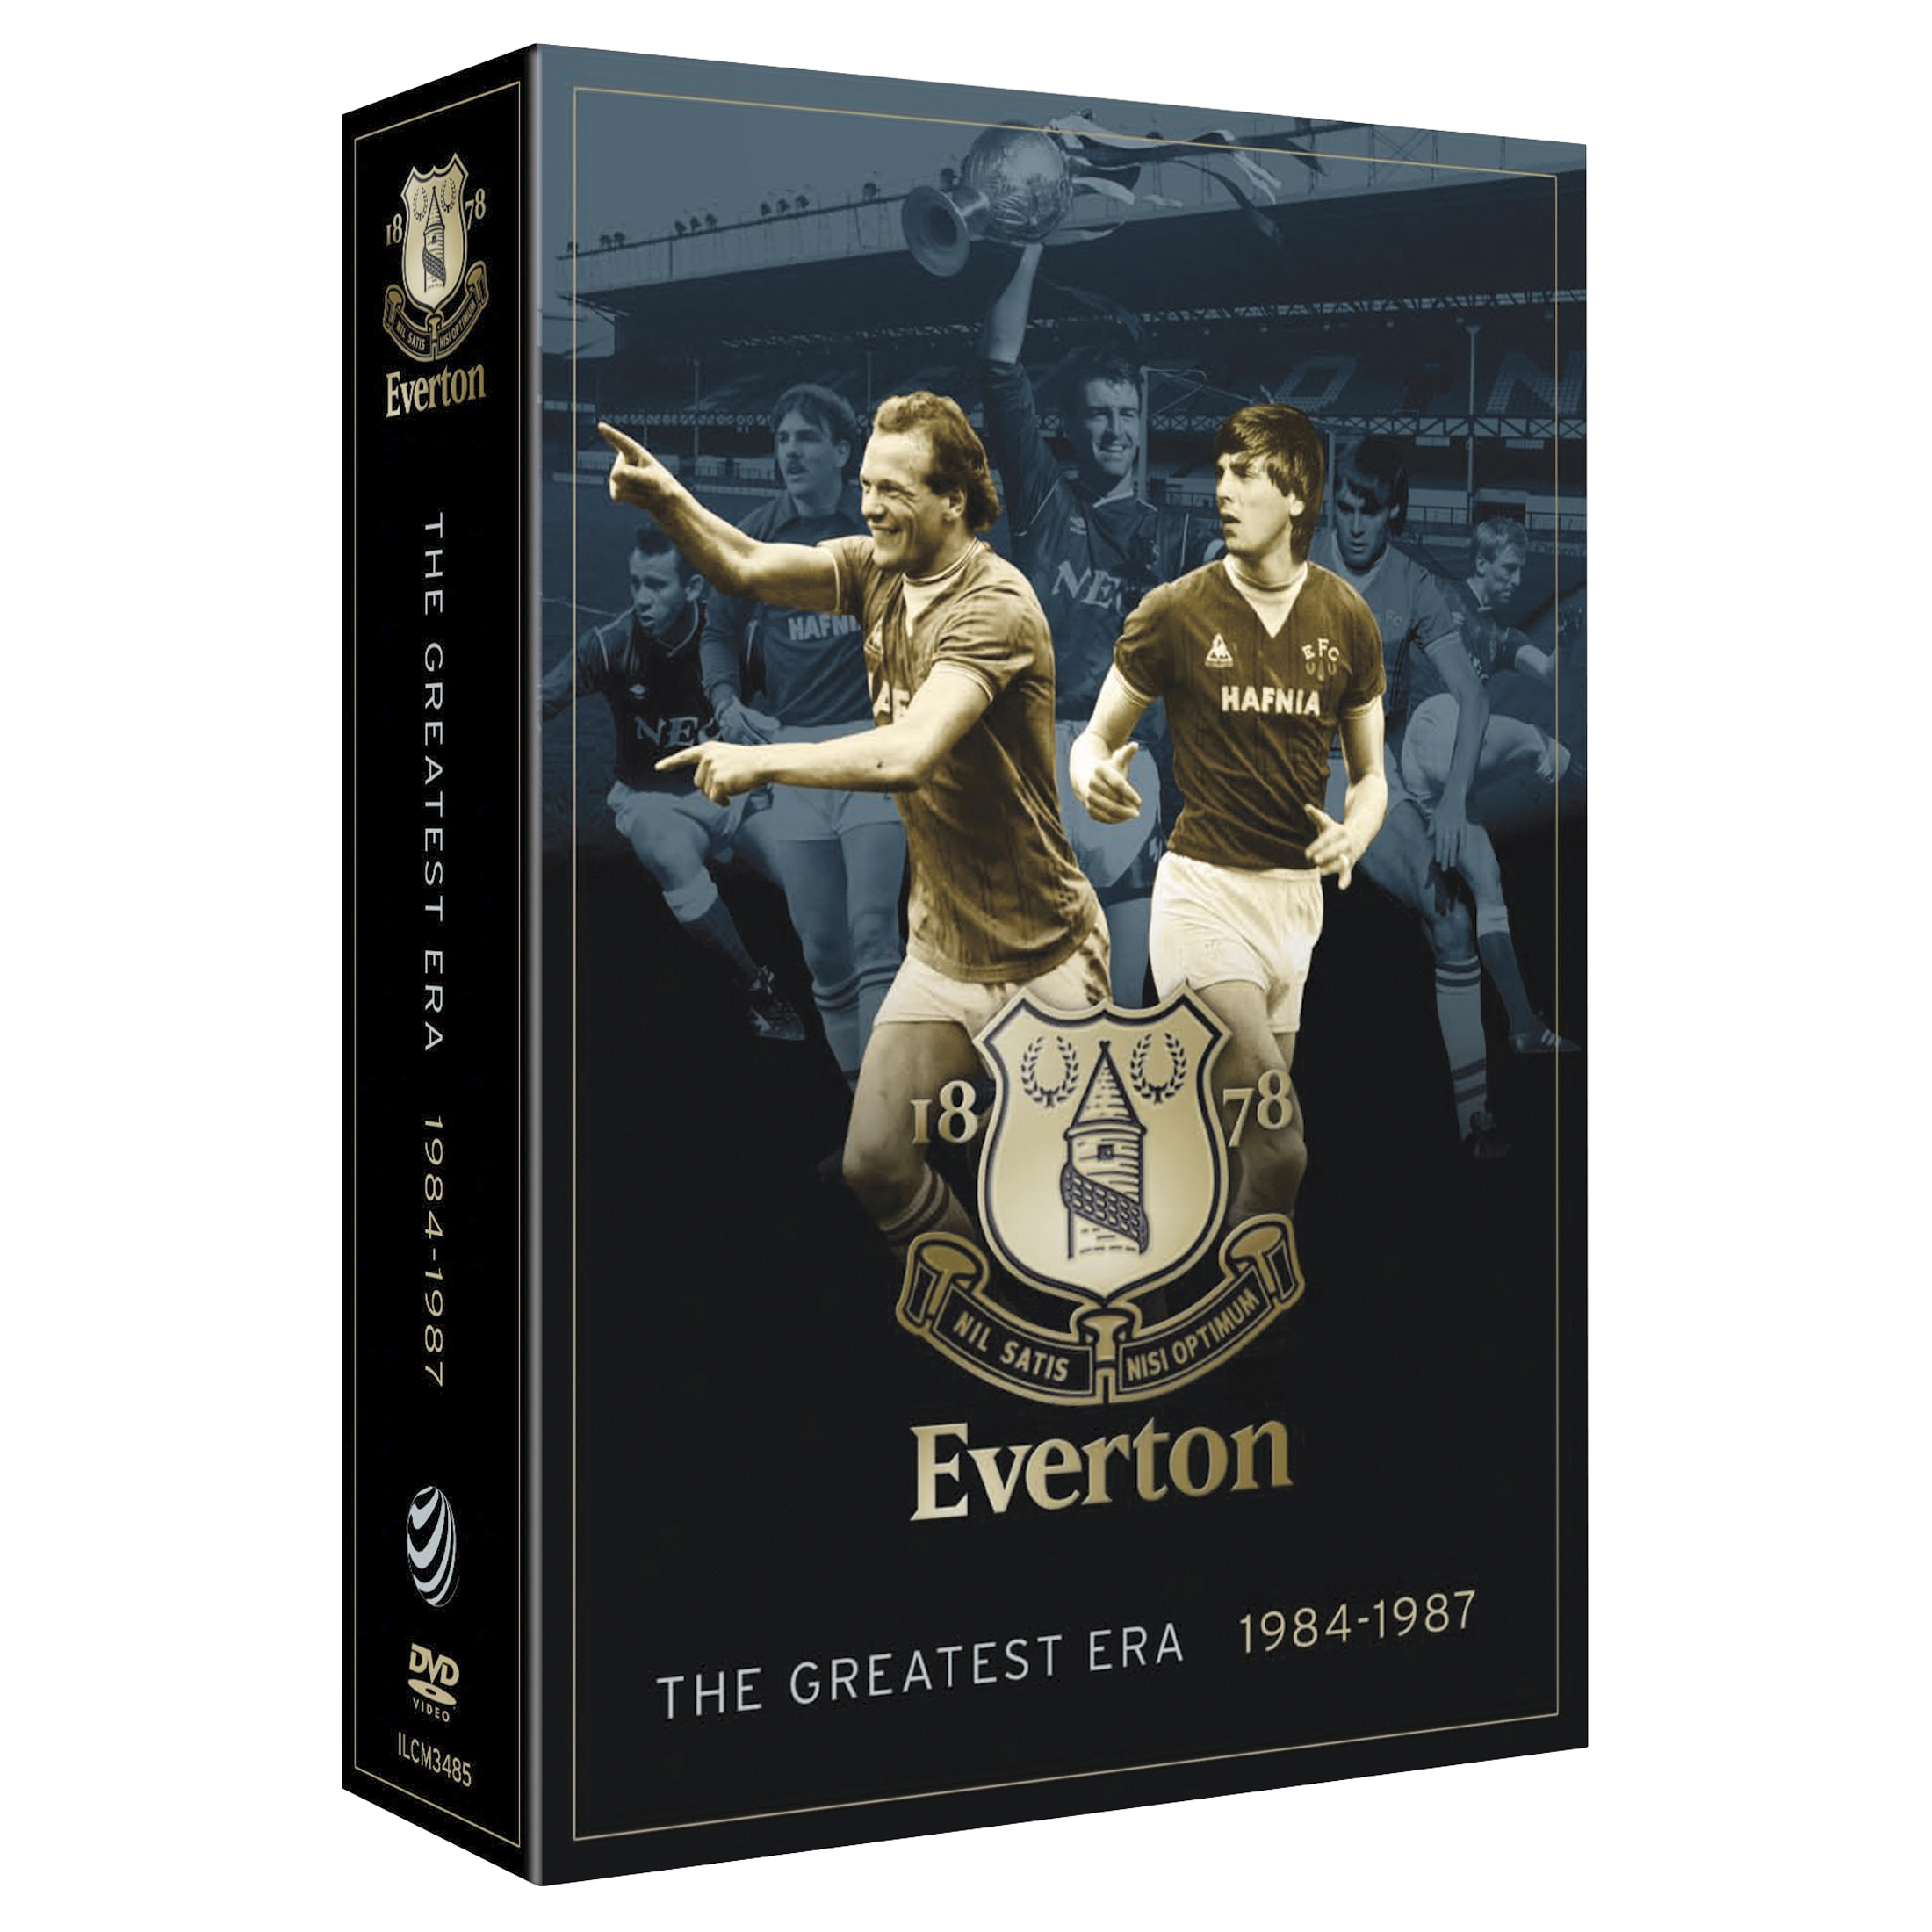 Everton Evertons Greatest Era  DVD Box Set